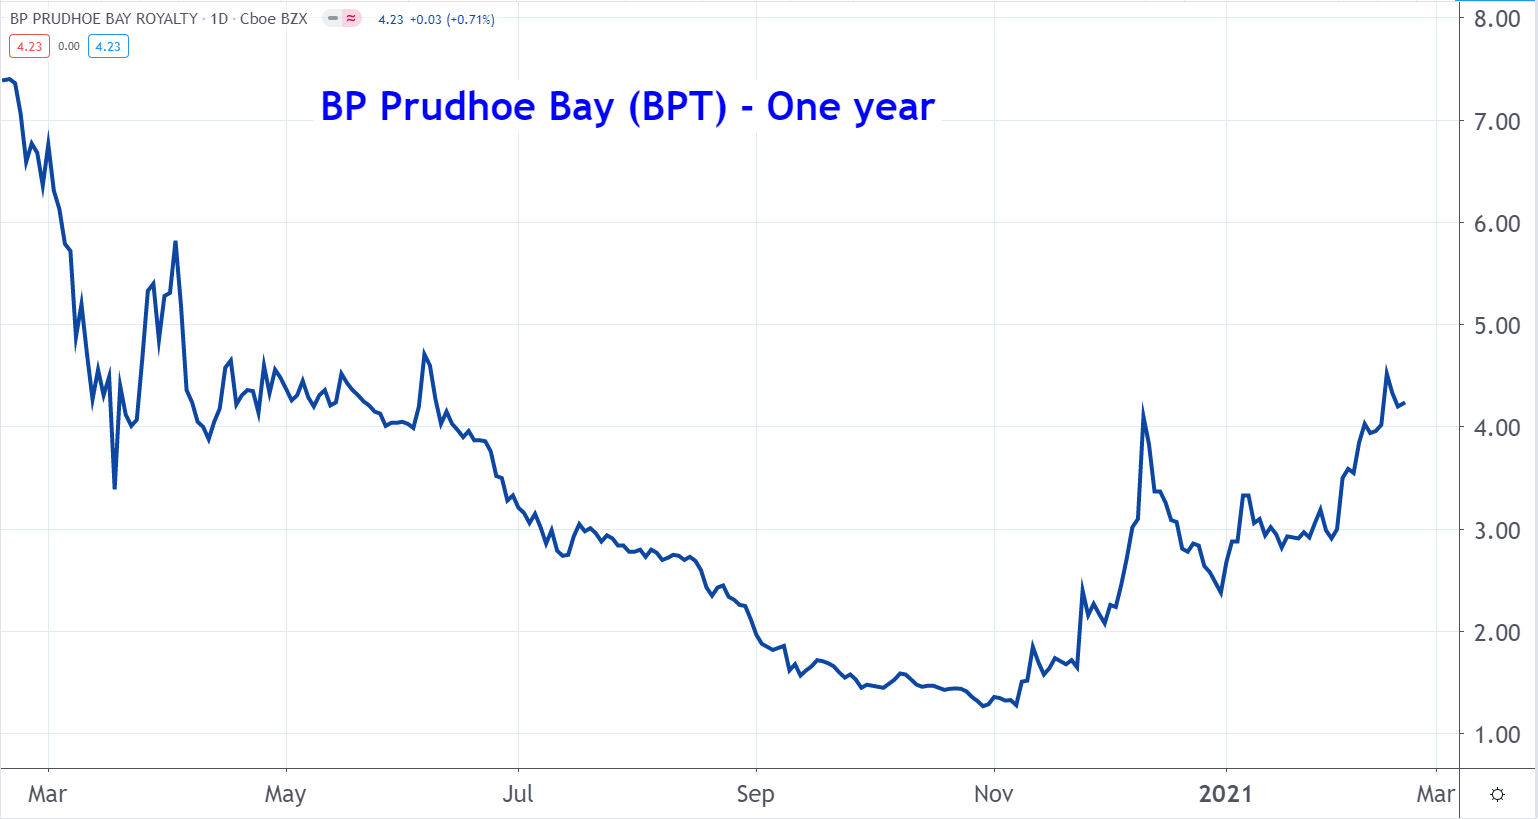 Line graph of BP Prudhoe Bay Royalty stock price from March 2020 to March 2021, showing an uptrend after falling to a low in November